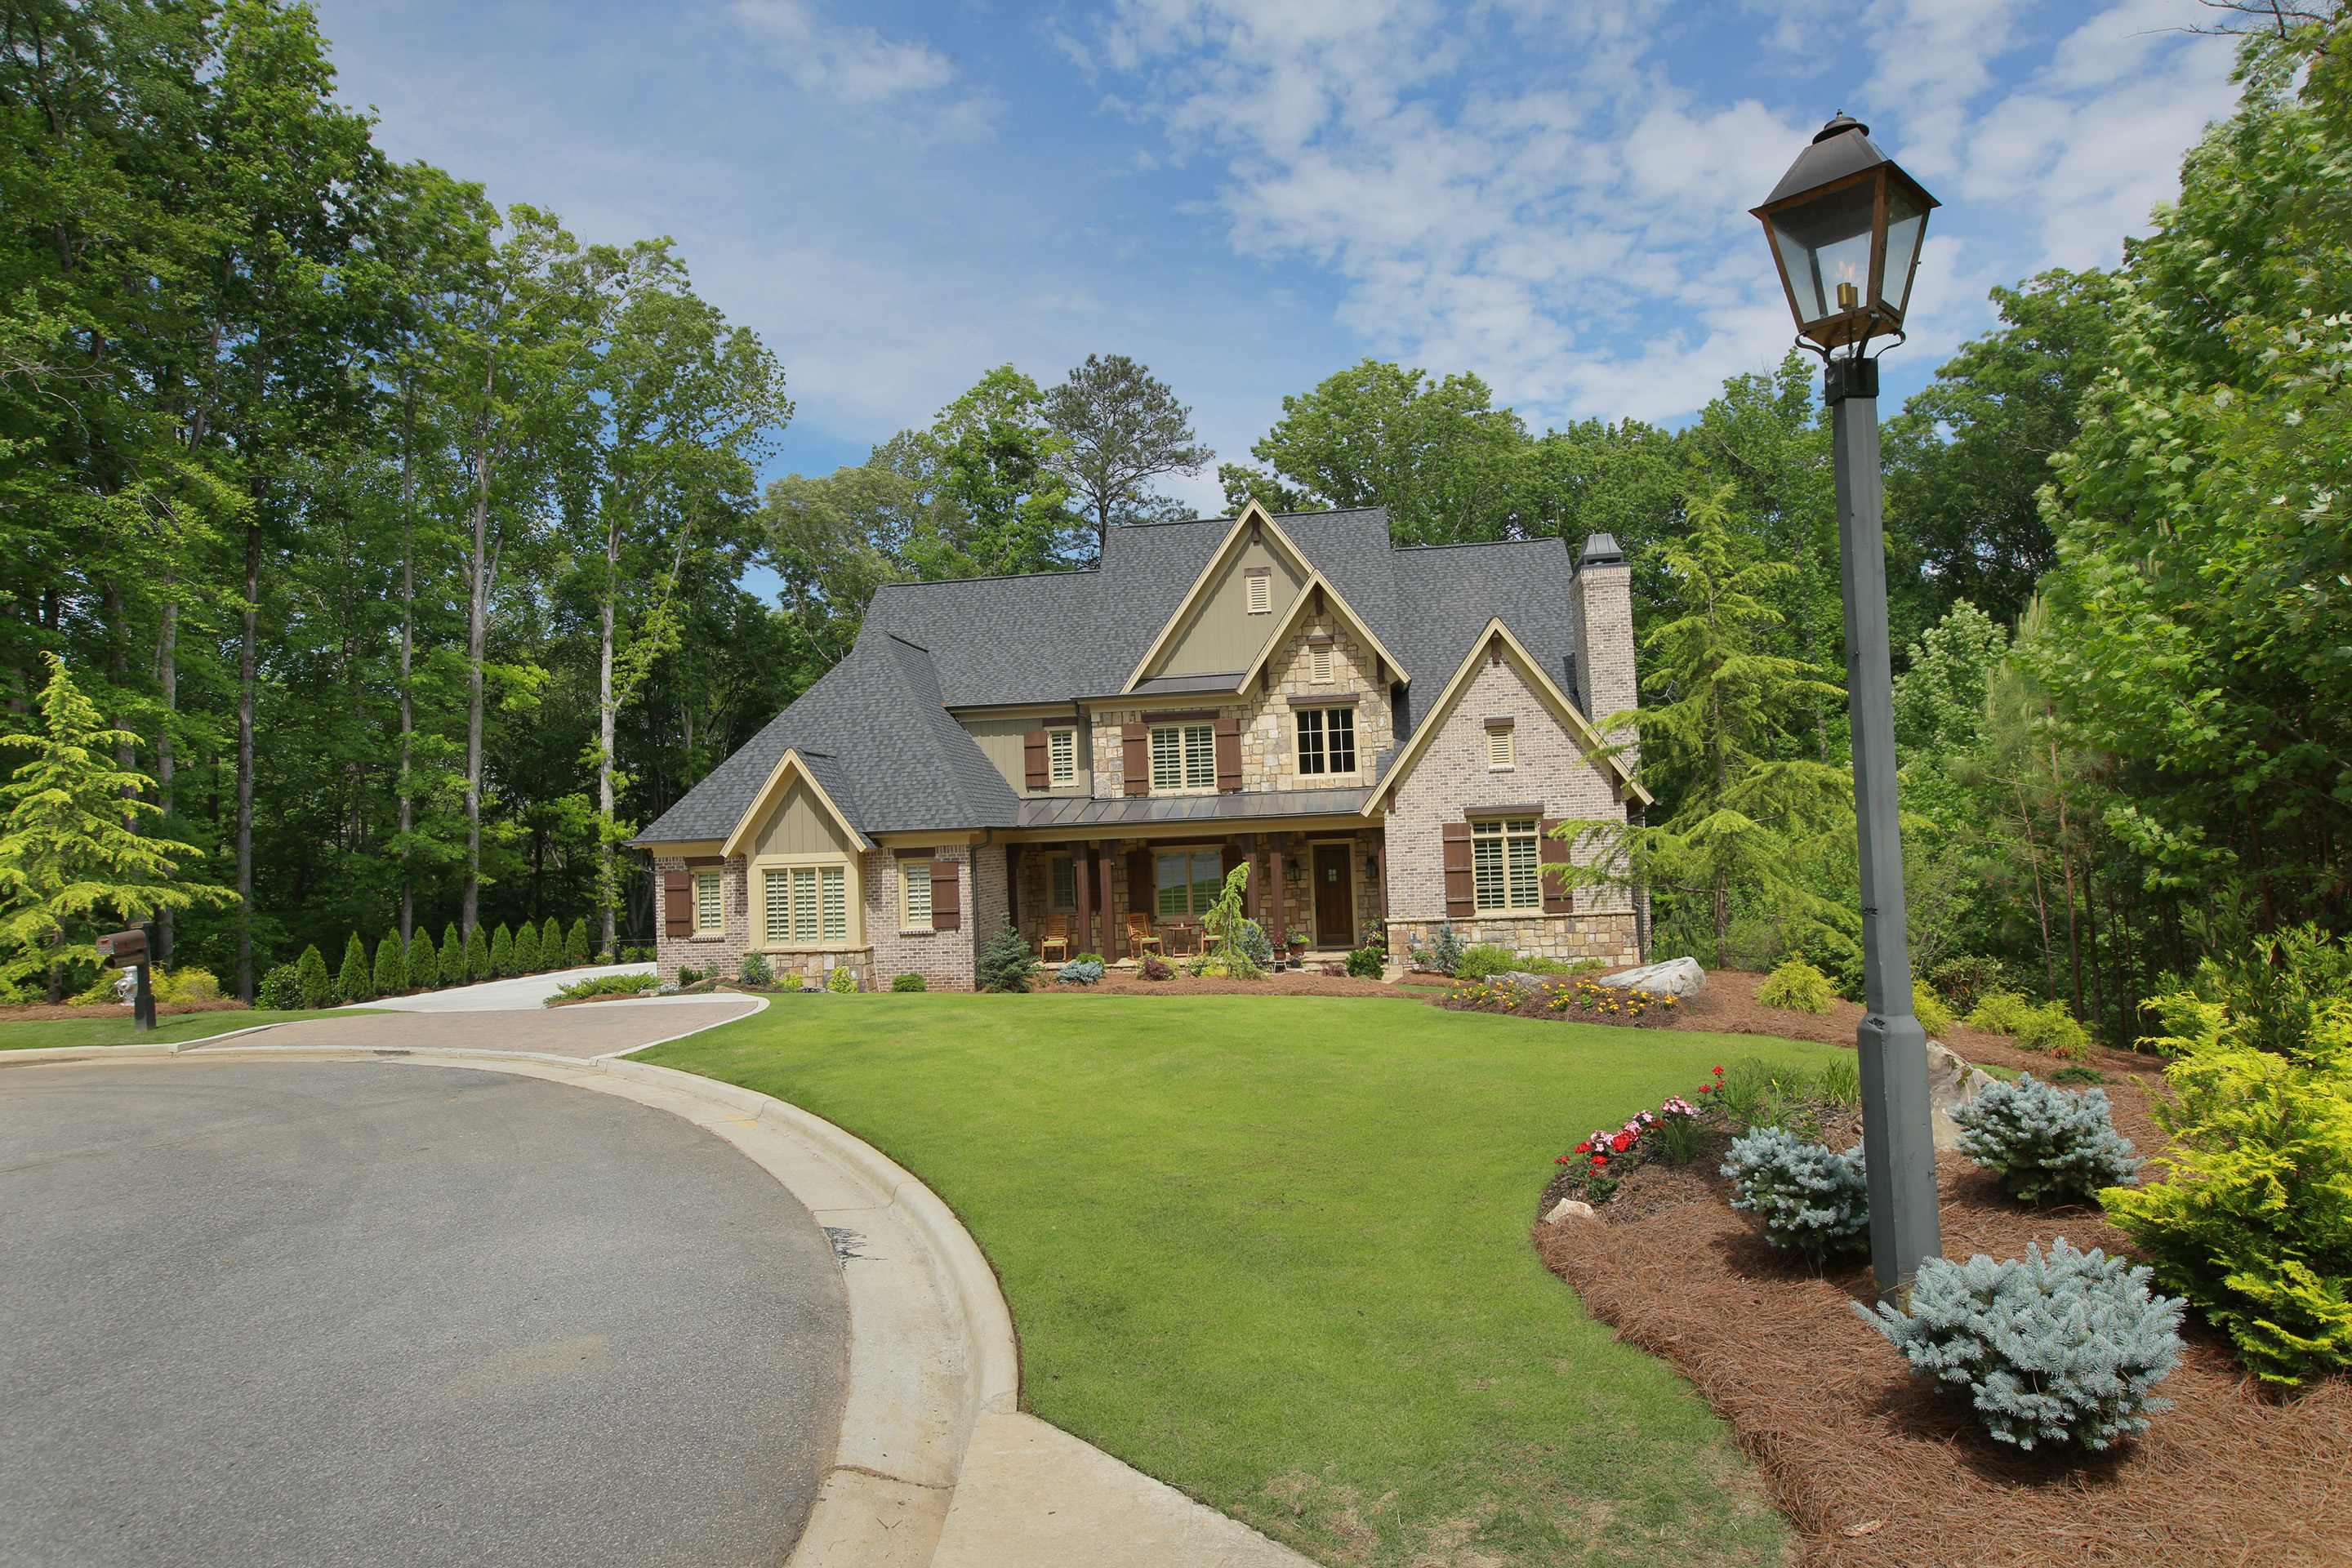 Casa Unifamiliar por un Venta en Private Retreat 5212 Boulder Bluff Way Suwanee, Georgia, 30024 Estados Unidos